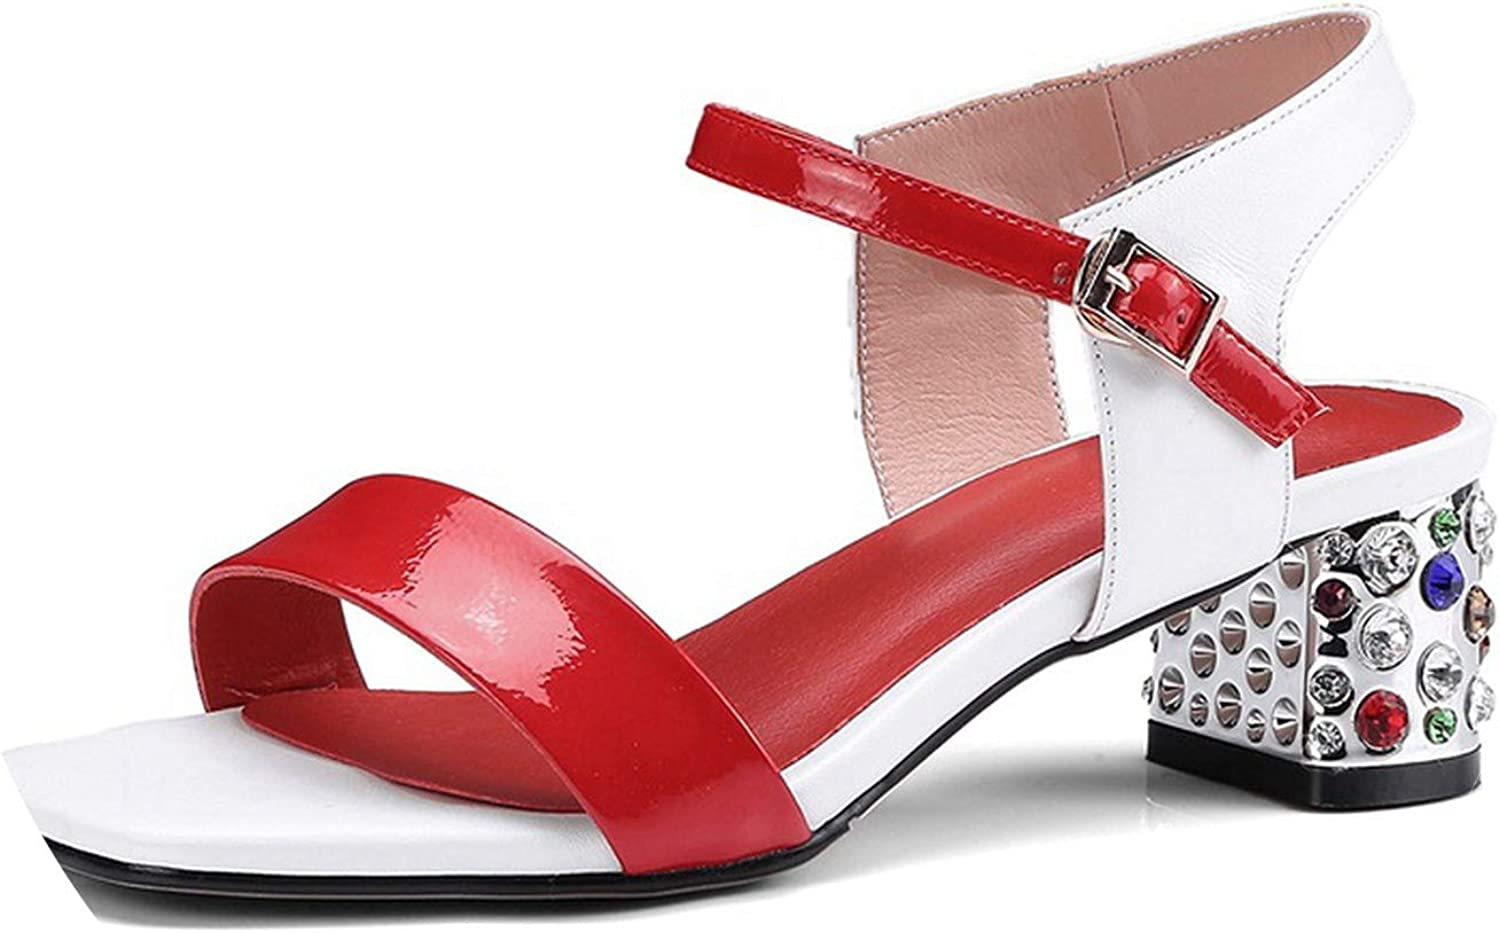 SANDIP MIKEY Summer Genuine Leather Women Sandals Rhitone Middle Heel Open Toe shoes Casual Date Party Woman shoes